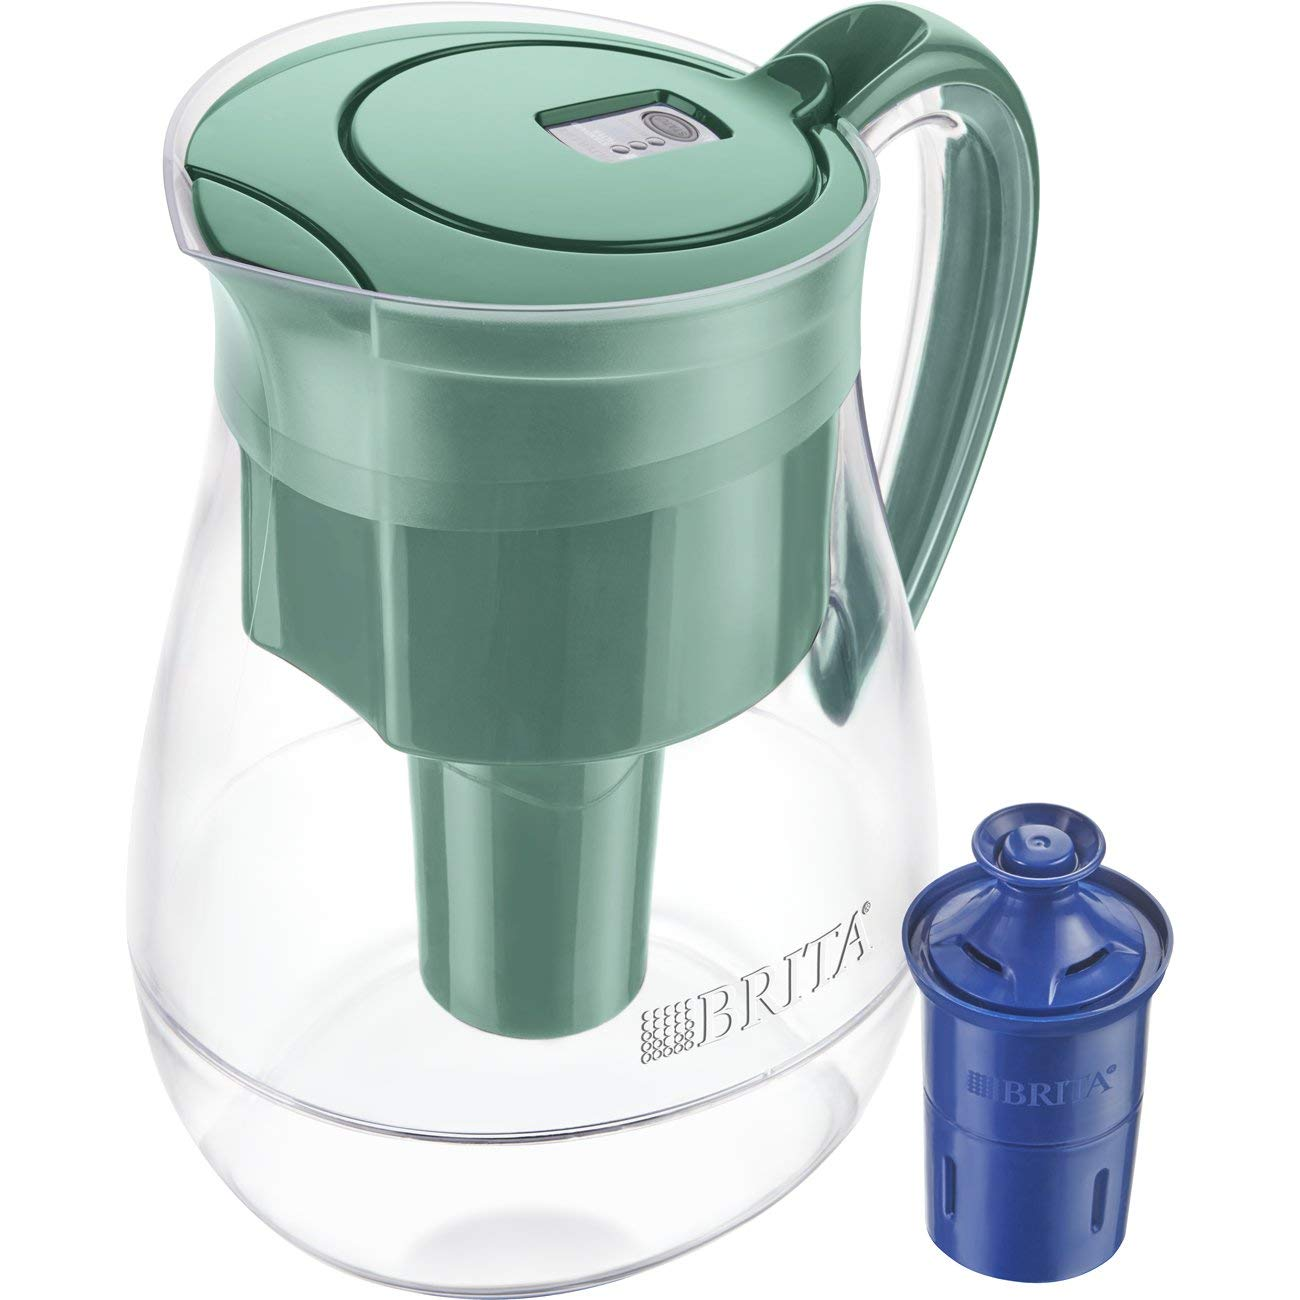 Brita Large 10 Cup Water Filter Pitcher with 1 Longlast Filter, Reduces Lead, BPA Free – Monterey, Green